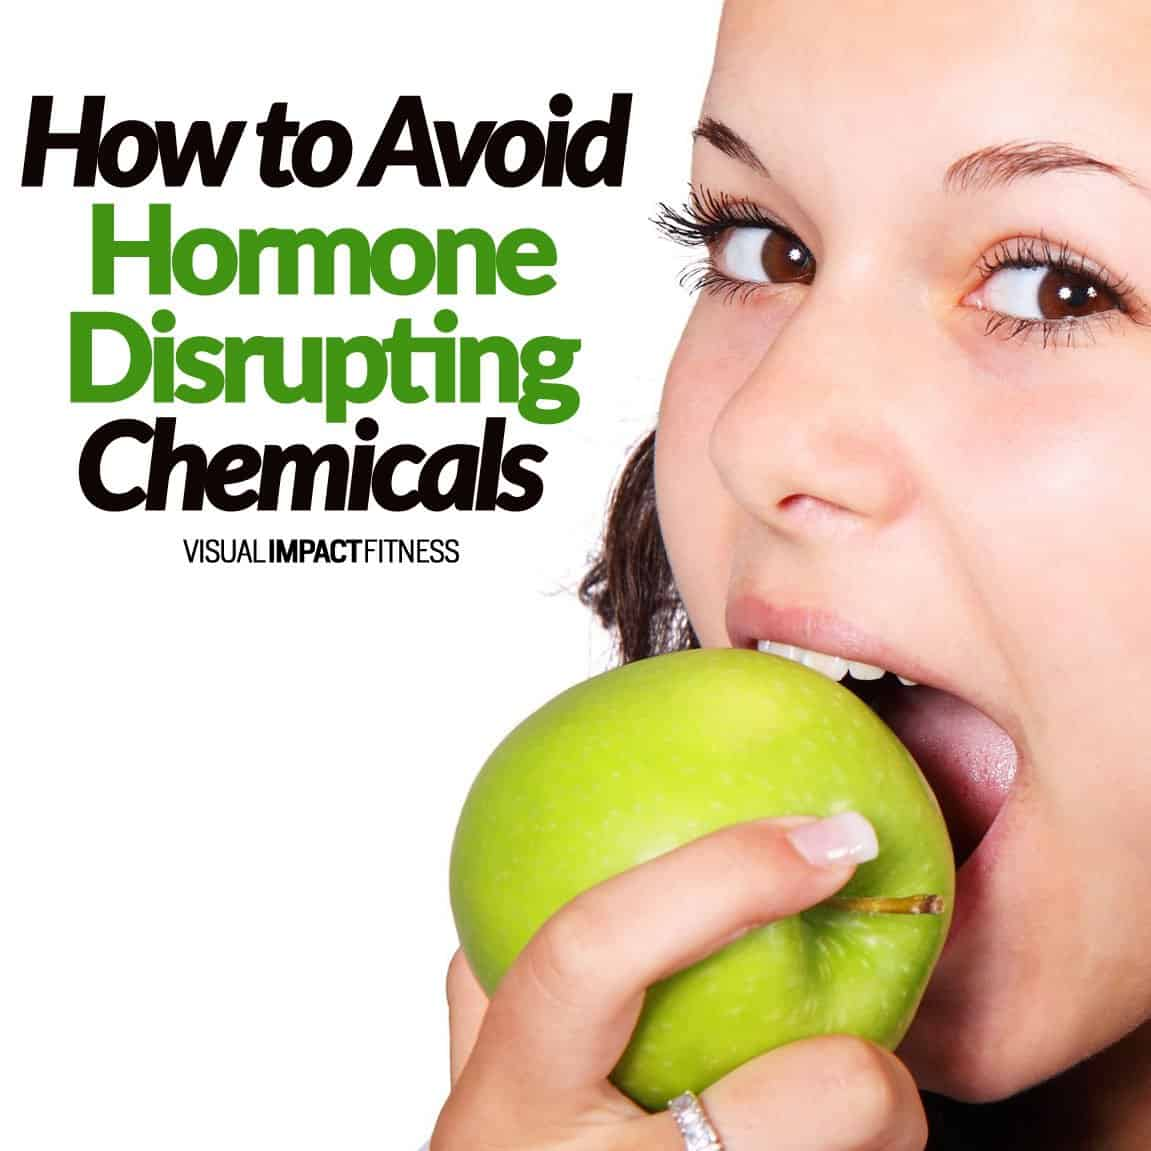 How to Avoid Hormone Disrupting Chemicals